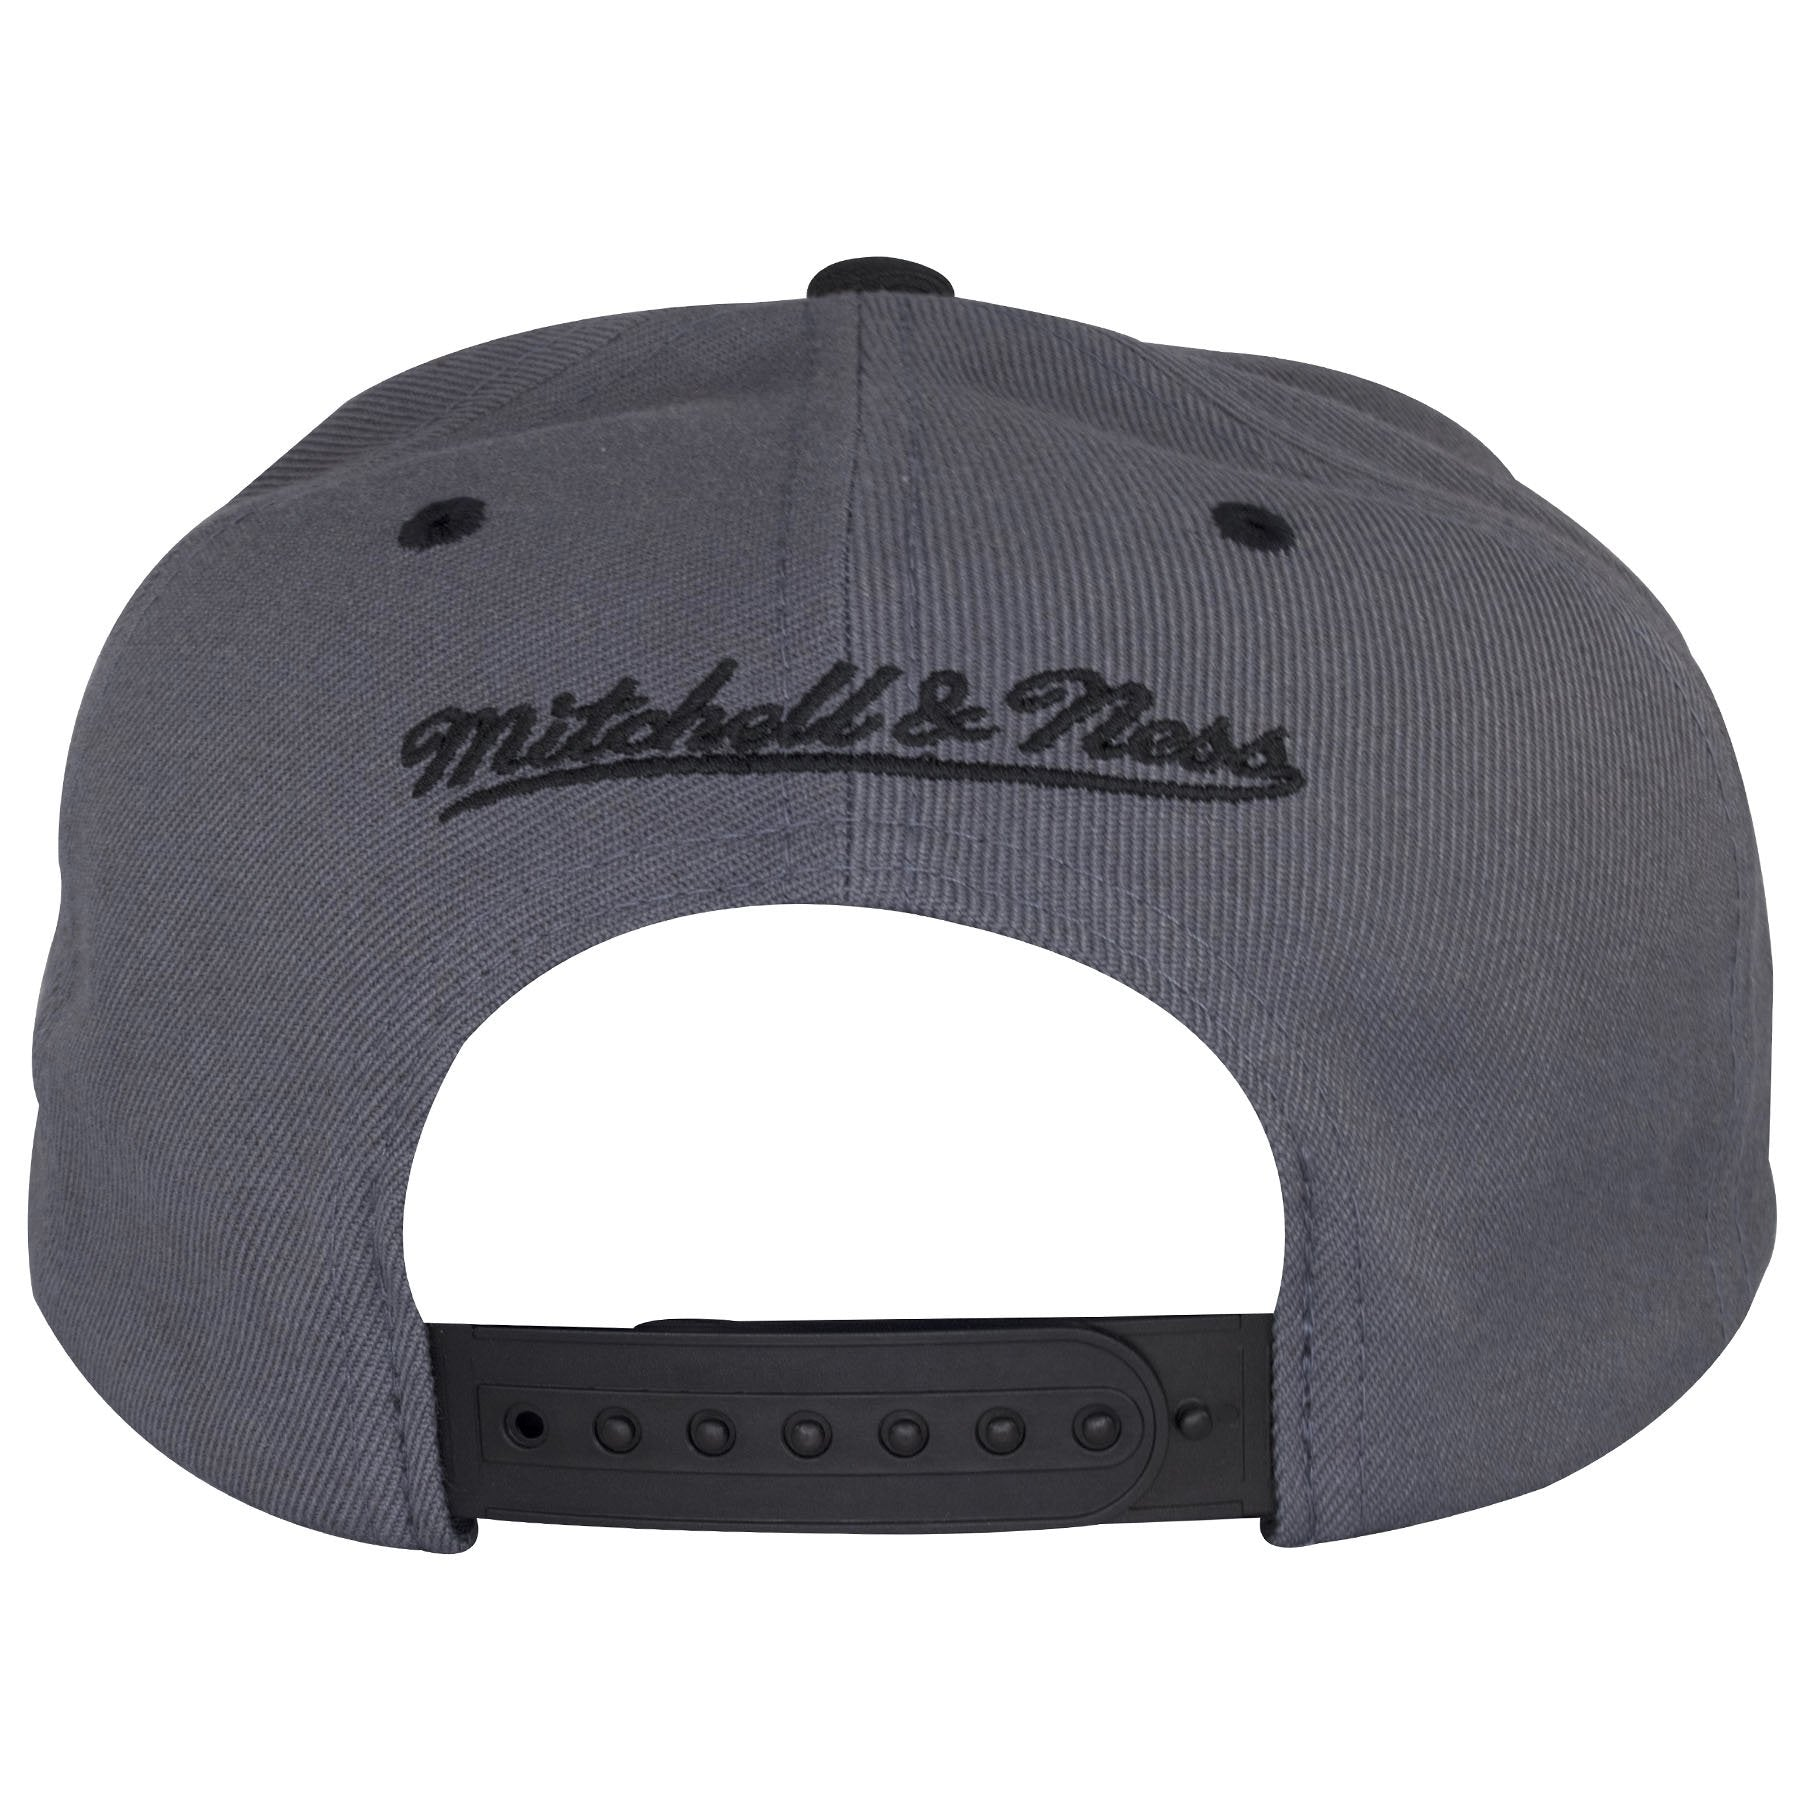 559892598b7 ... Jordan 13 snapback hat is outlined · The back of this Gray Chicago  Bulls Hat shows the Mitchell and Ness logo embroidered in ...